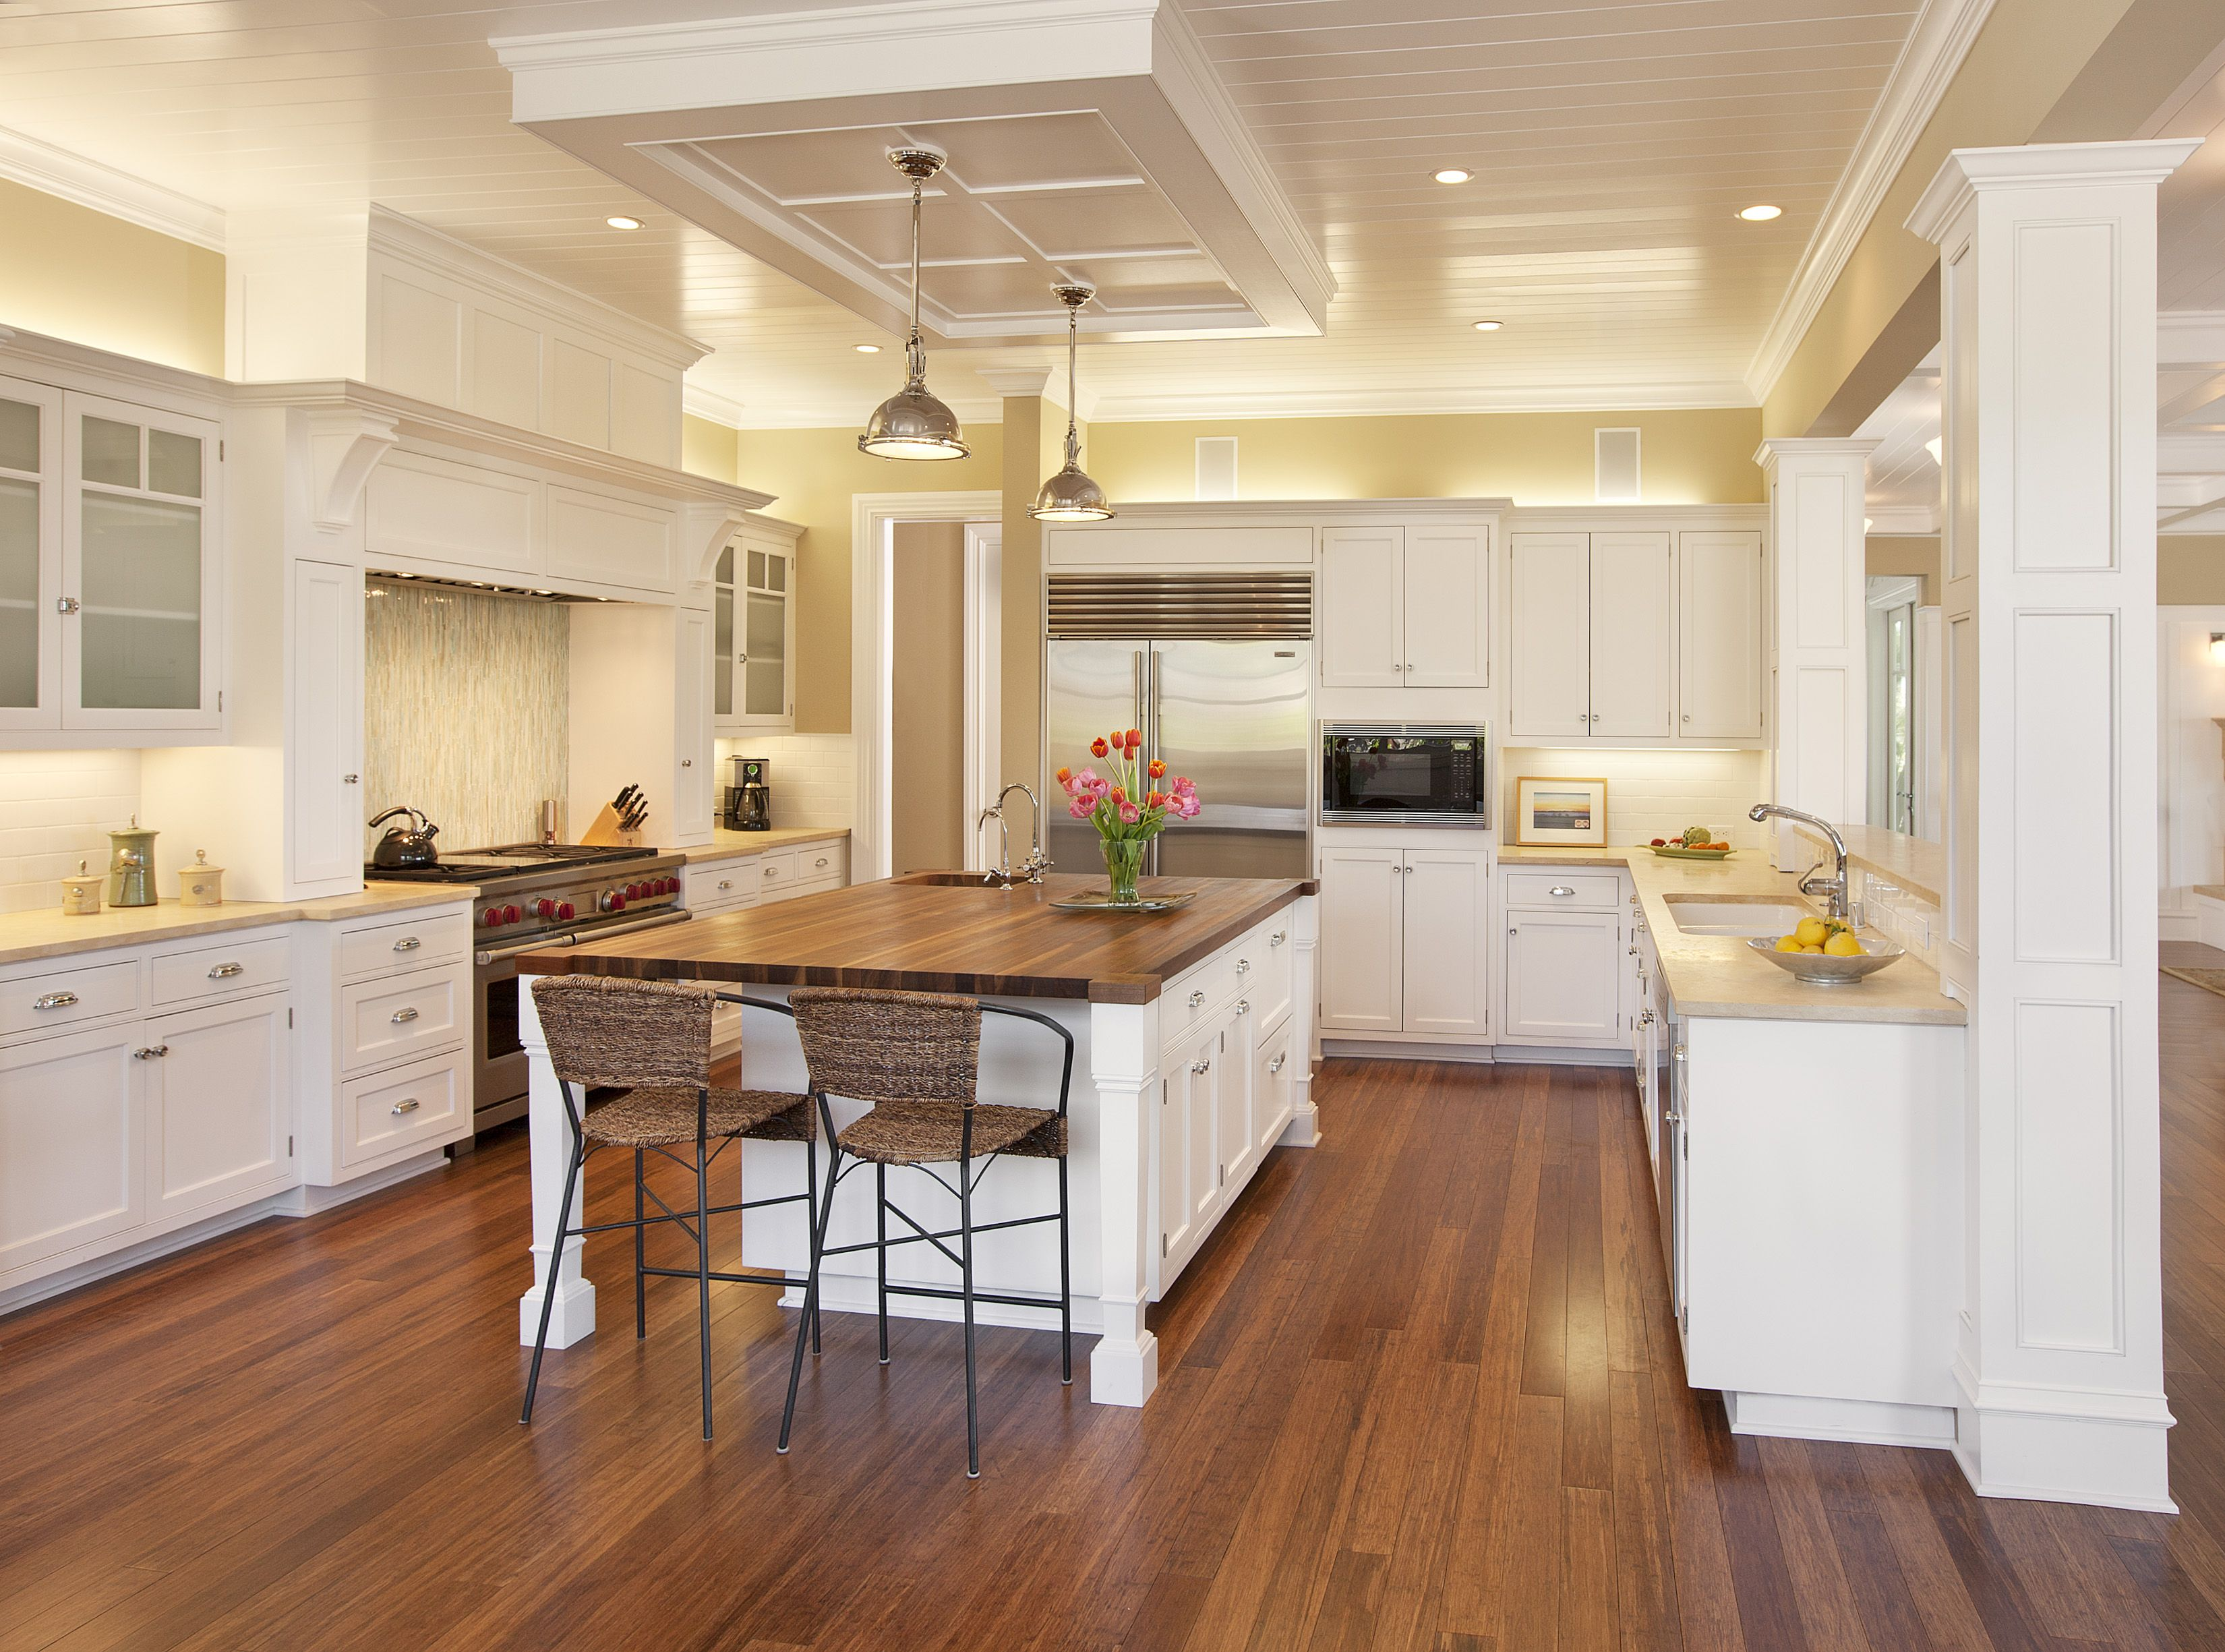 Bright And Airy Kitchen, White Cabinets, Island With Wood Counter